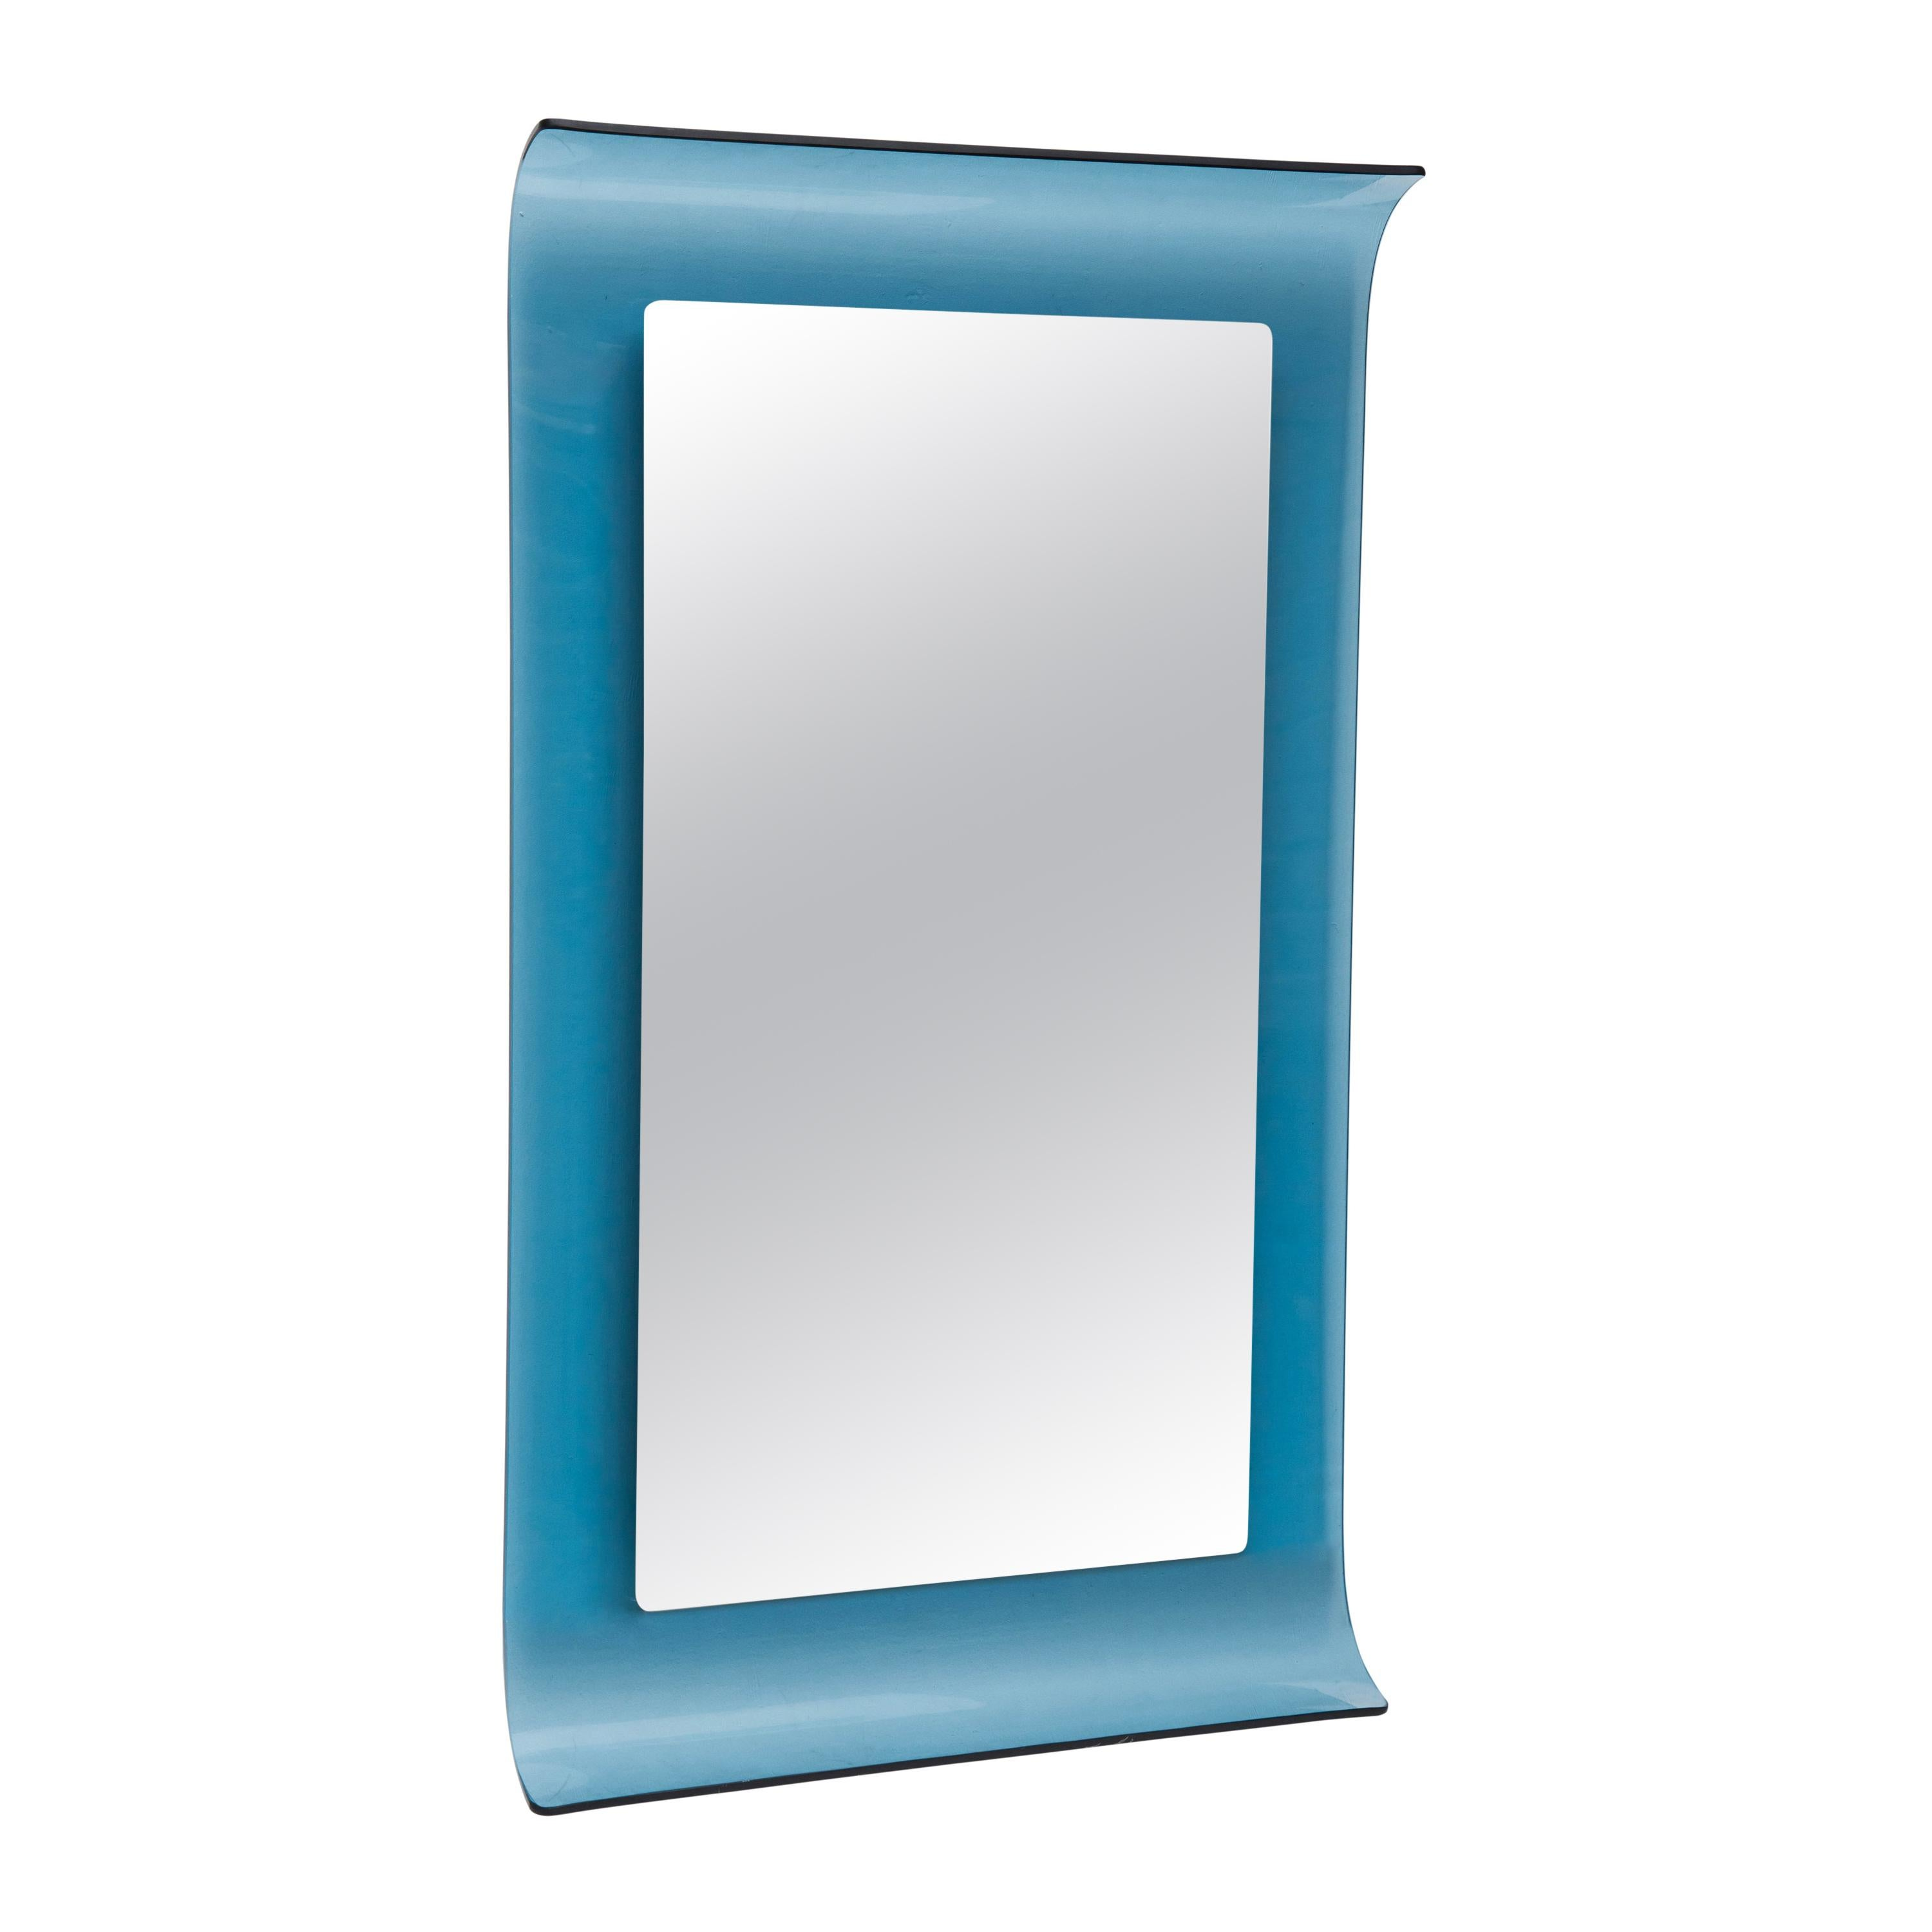 1960s Italian Design Mirror Very Iconic Blue Crystal Curved Edges Glass Mirror